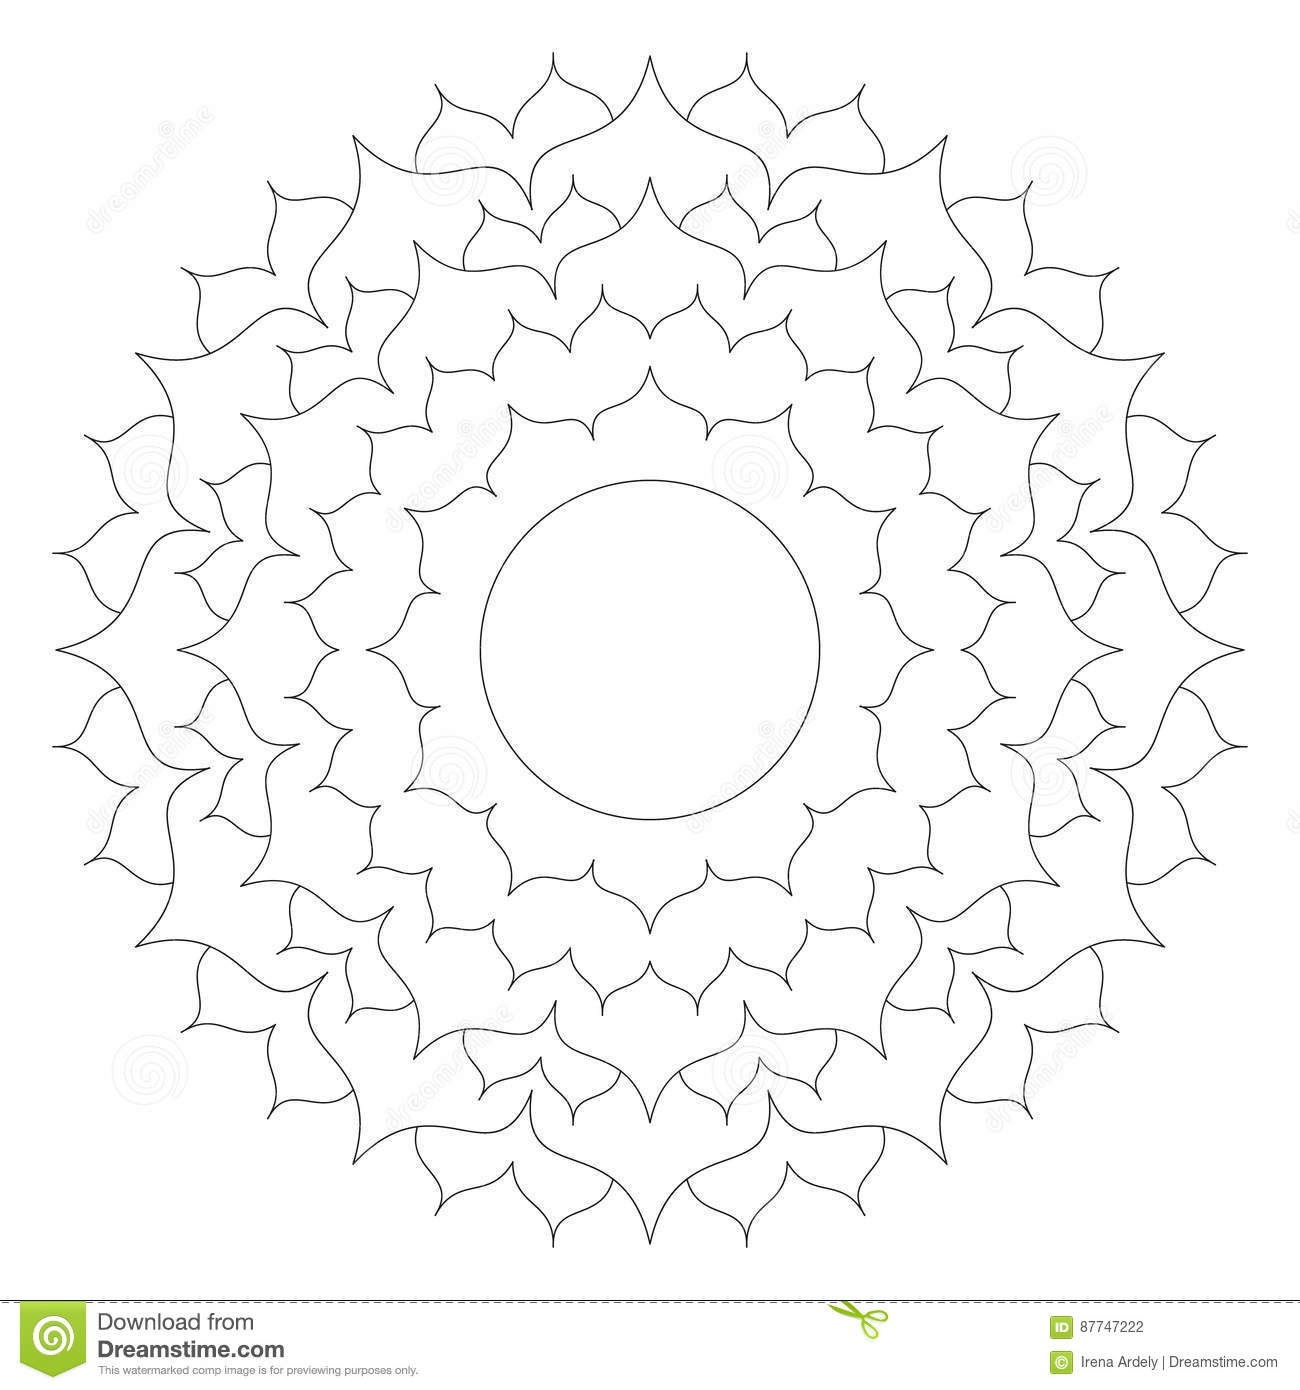 Download Vector Black White Round Simple Mandala Lotus Flower